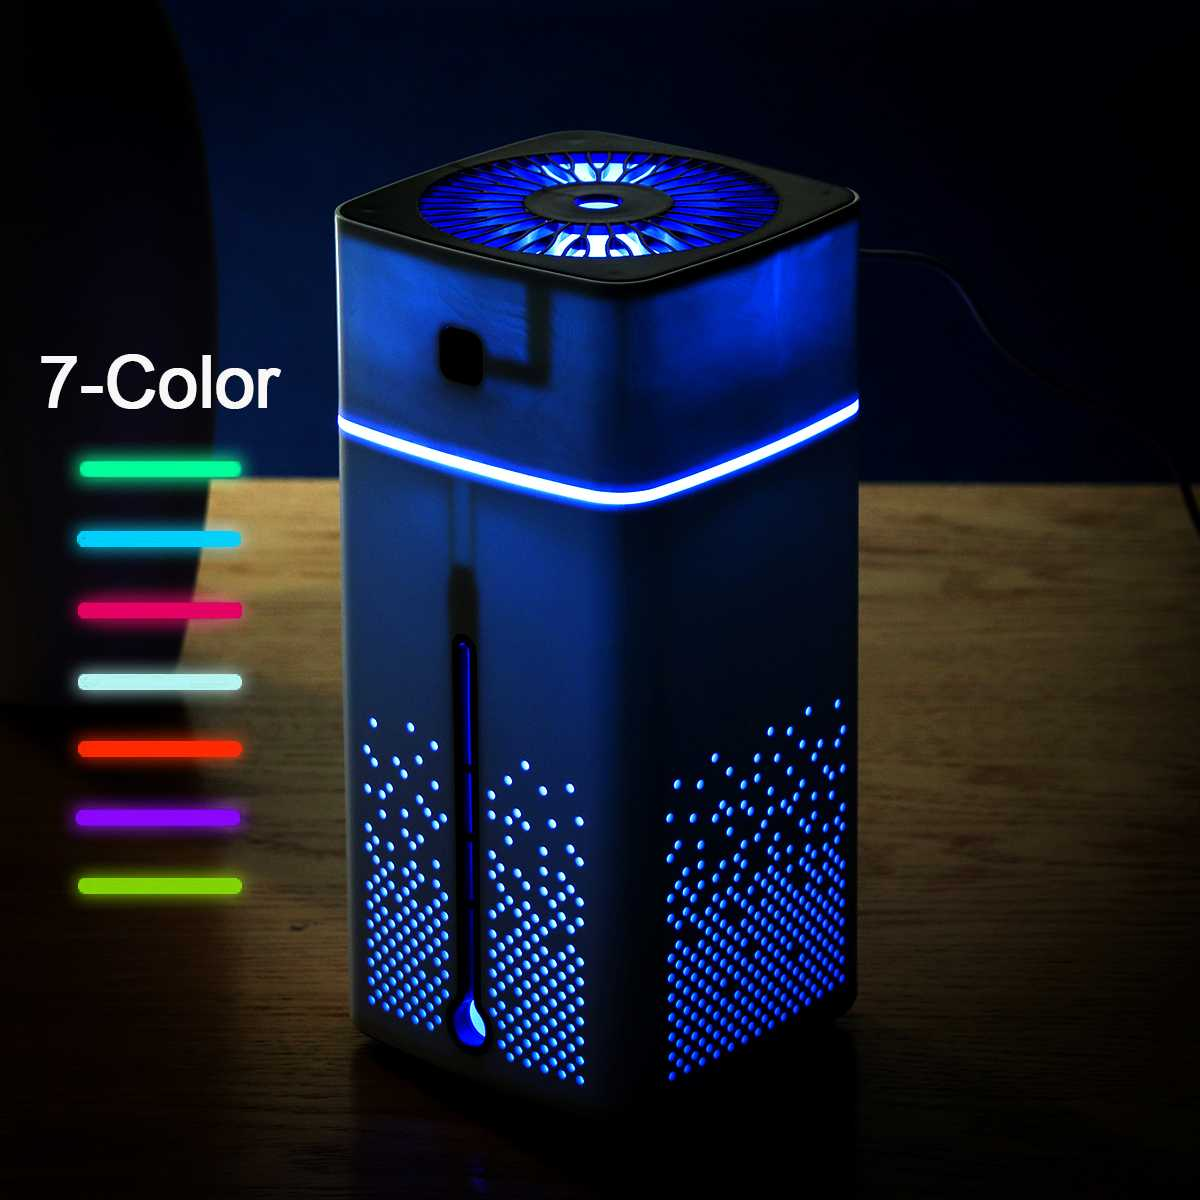 LED Night Light Mist Purifier 1000ML Air Humidifier Ultrasonic USB Diffuser Aroma Essential Oil Humidificador Black White